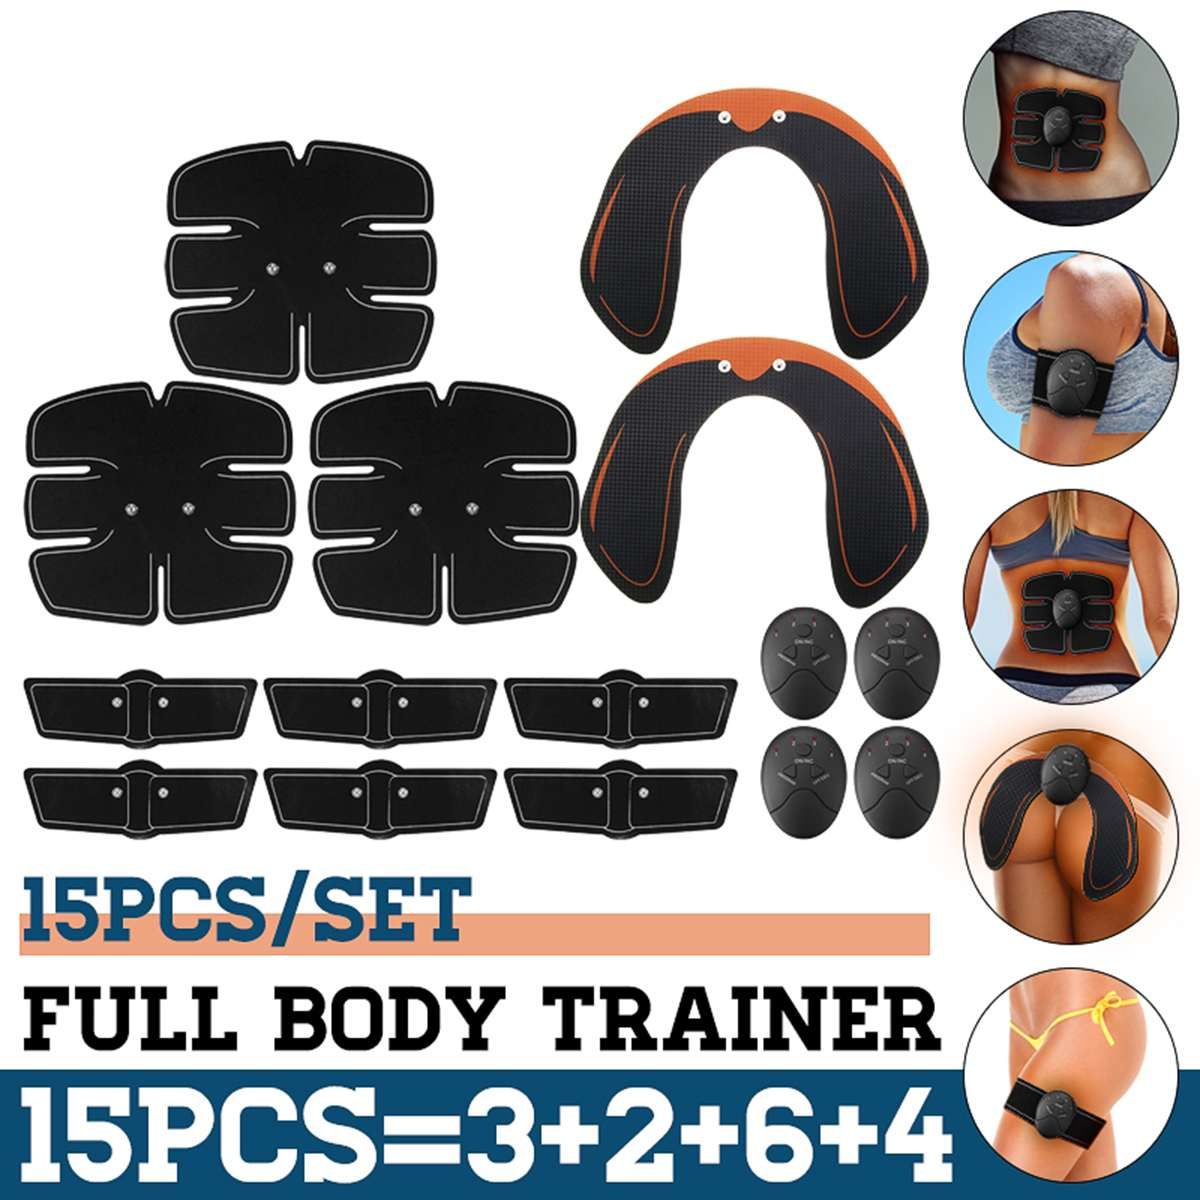 15PCS/Set EMS Muscle Abdominal Trainer Muscle ABS Hip Abdominal Muscle Stimulator Massage Set Weight Loss Home Fitness Exercise